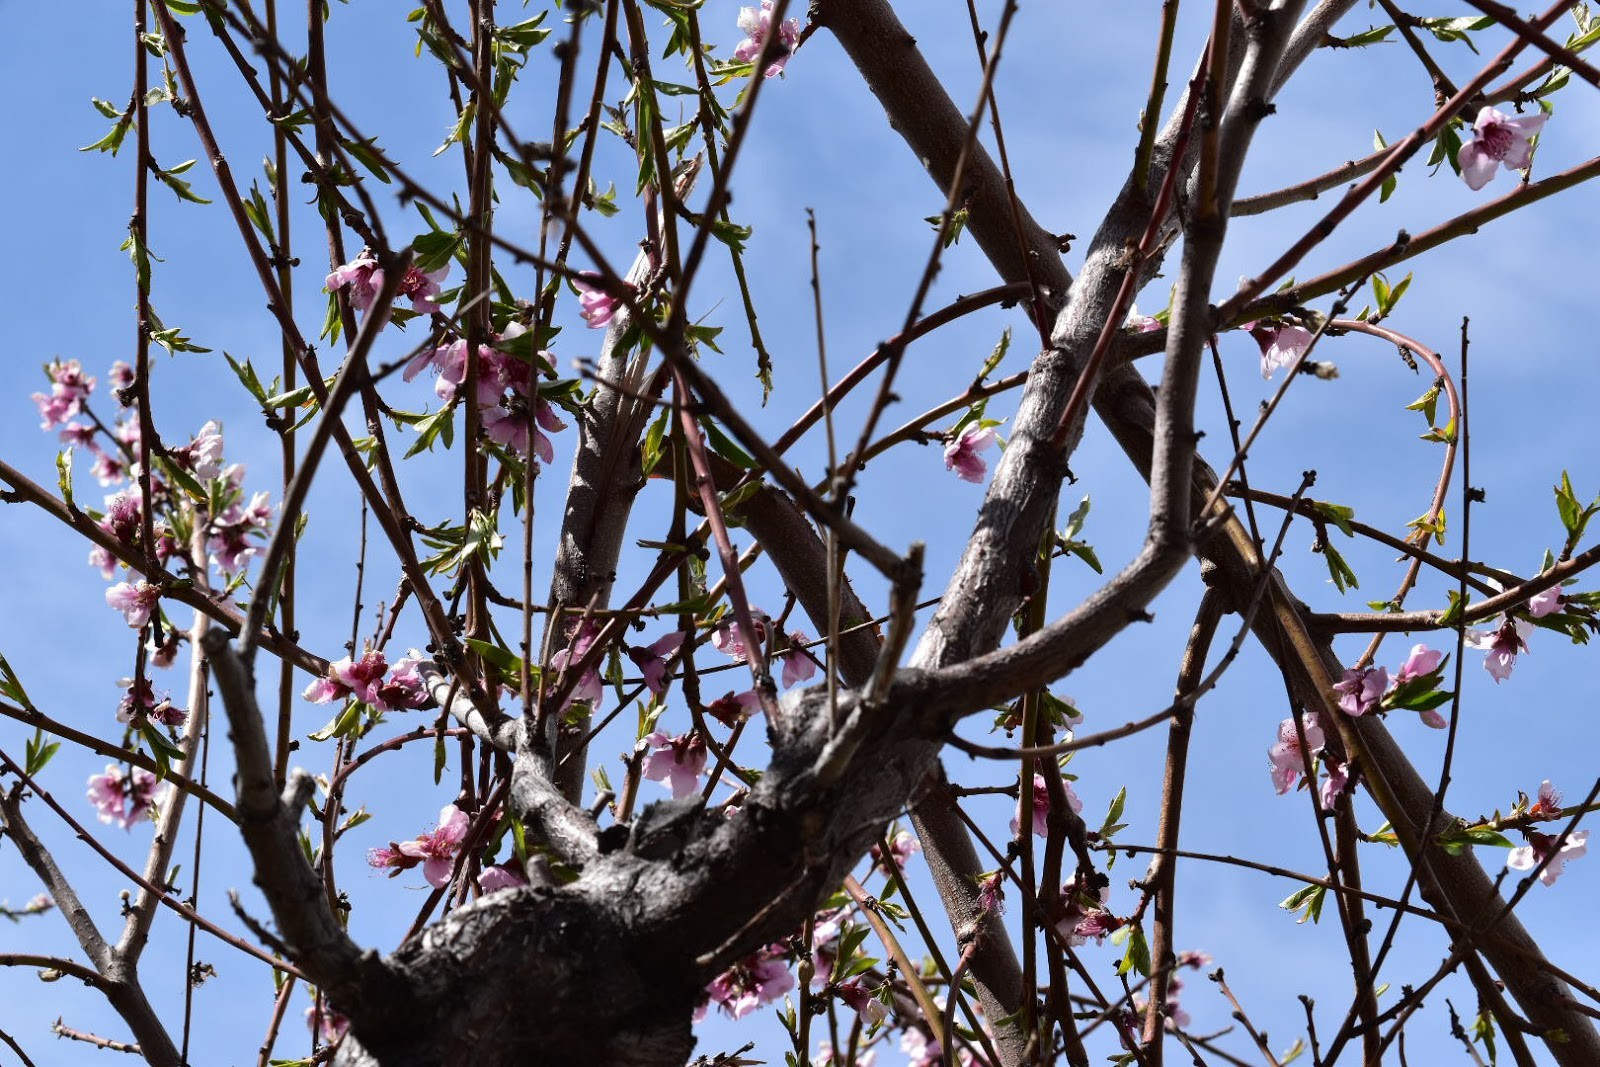 Crowding branches of an apple tree.